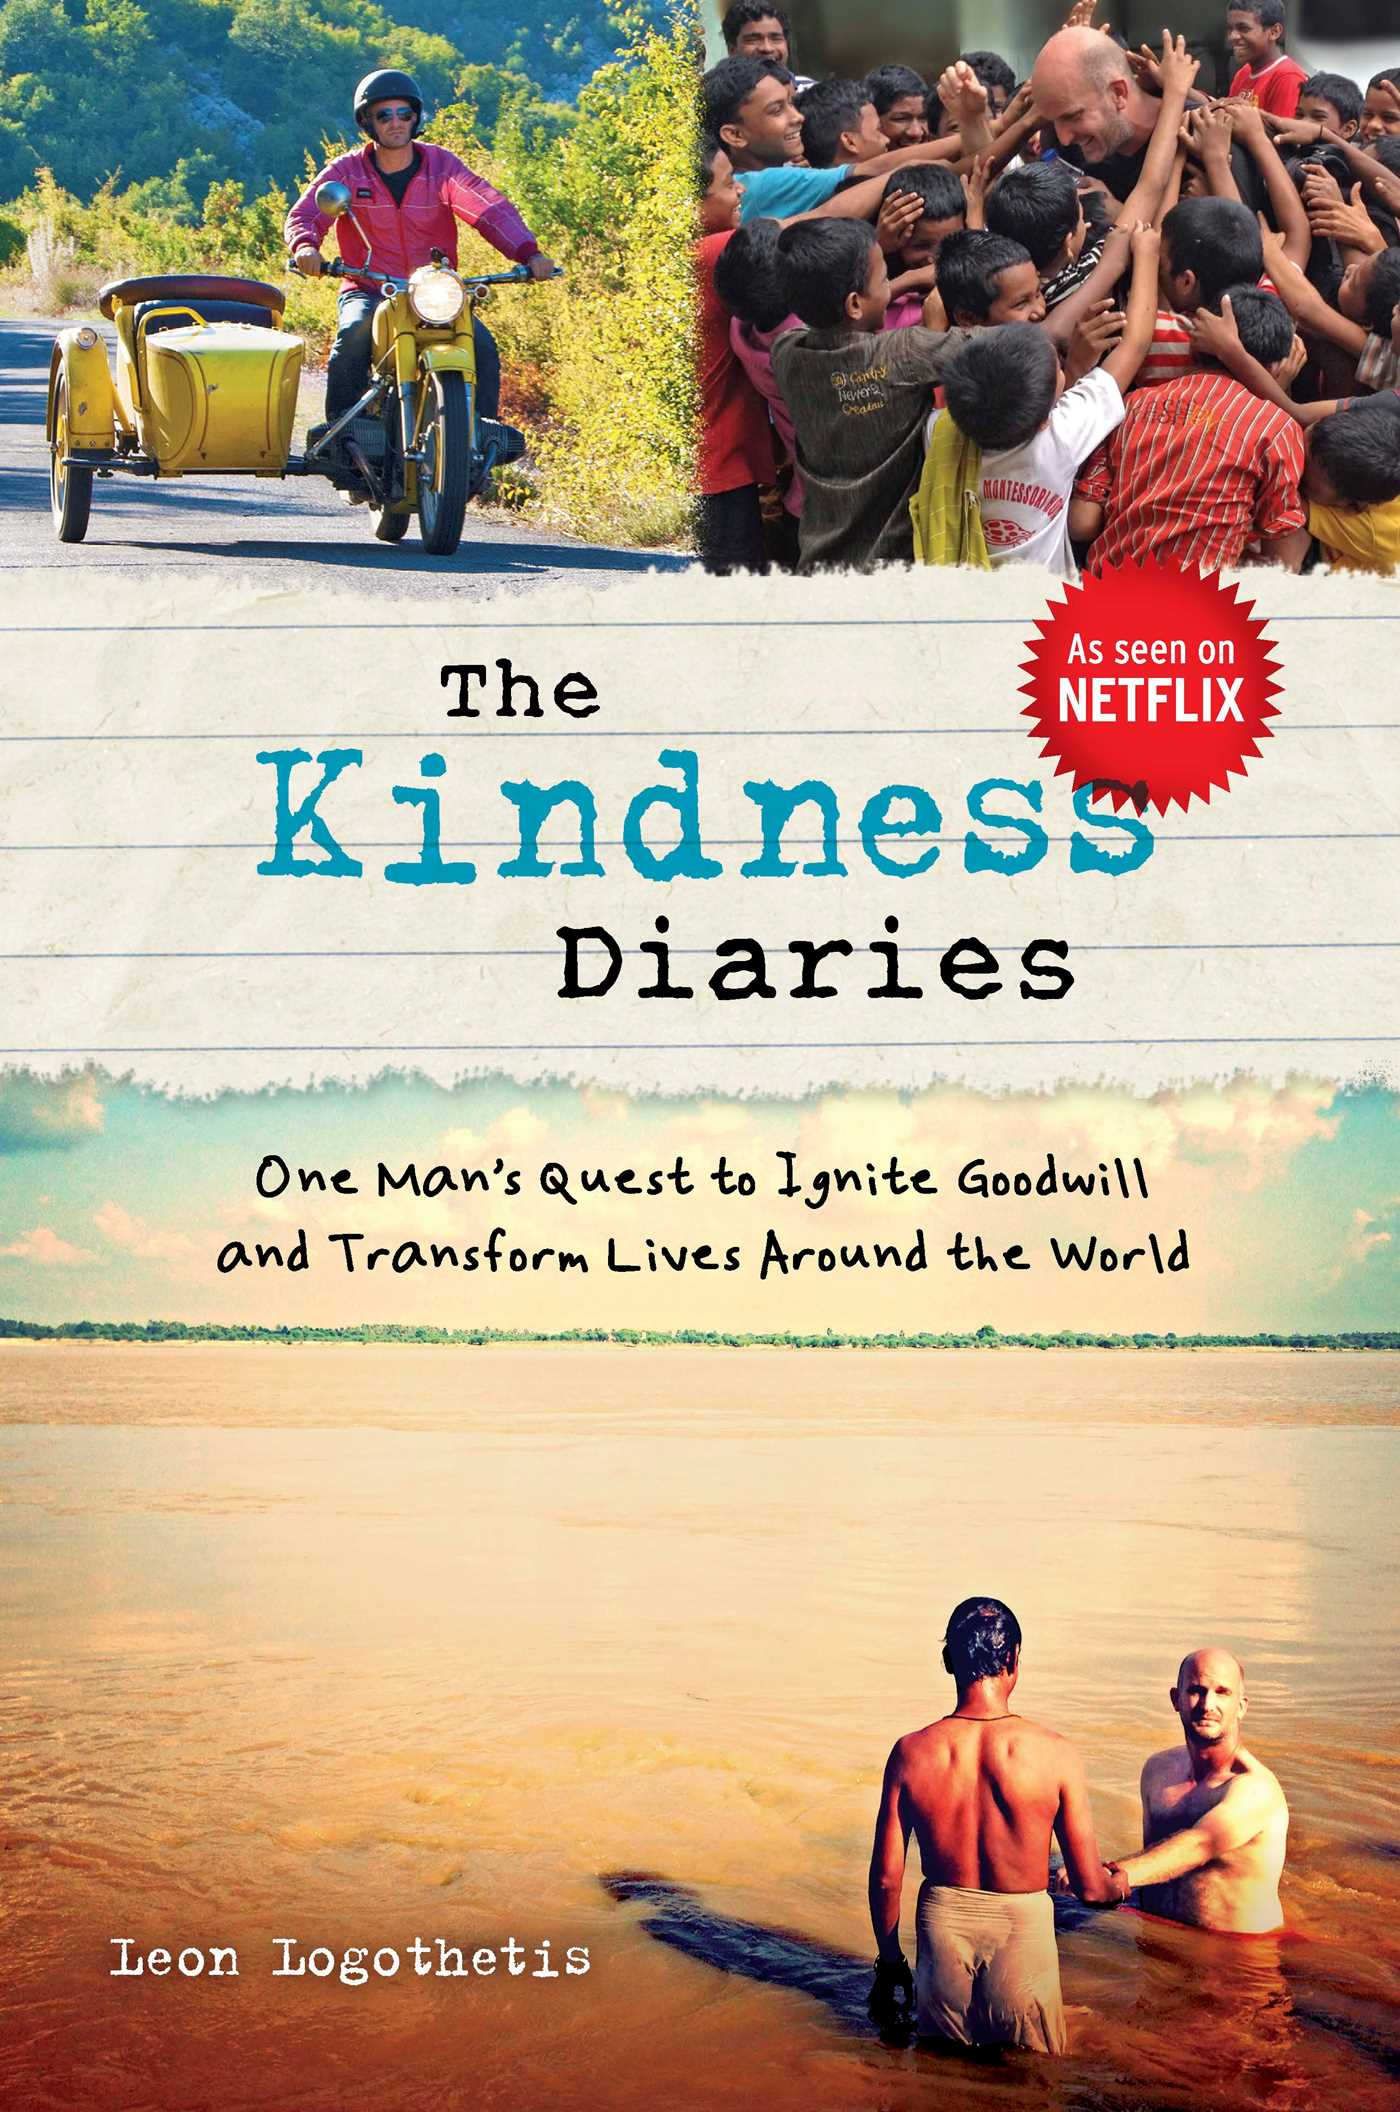 The kindness diaries 9781621451921 hr